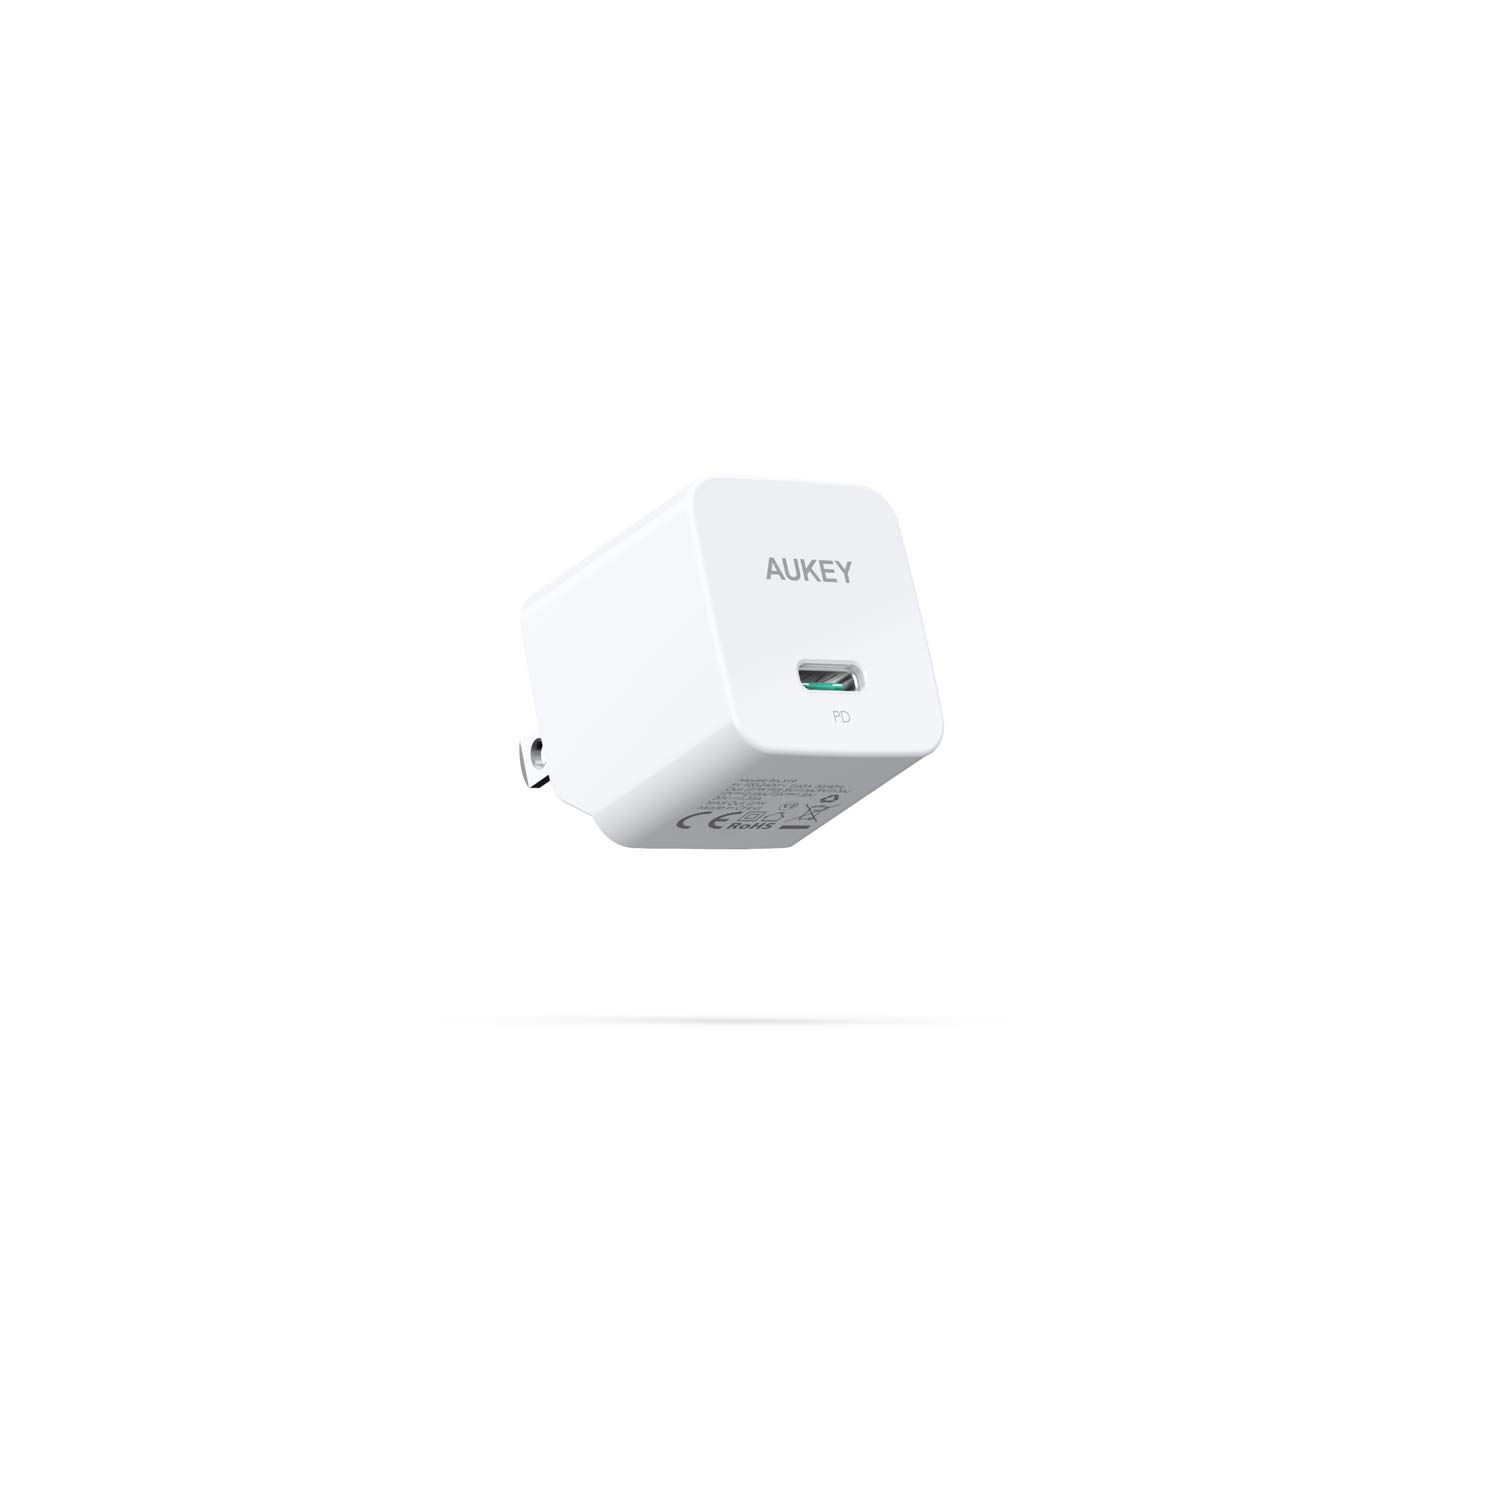 AUKEY USB C Power Delivery Charger with 27W PD & GaNFast Tech, Ultra-Compact USB C Wall Charger, Compatible iPhone Xs/Xs Max/XR, Samsung Galaxy S8/Note8, Nintendo Switch, MacBook Air, and More